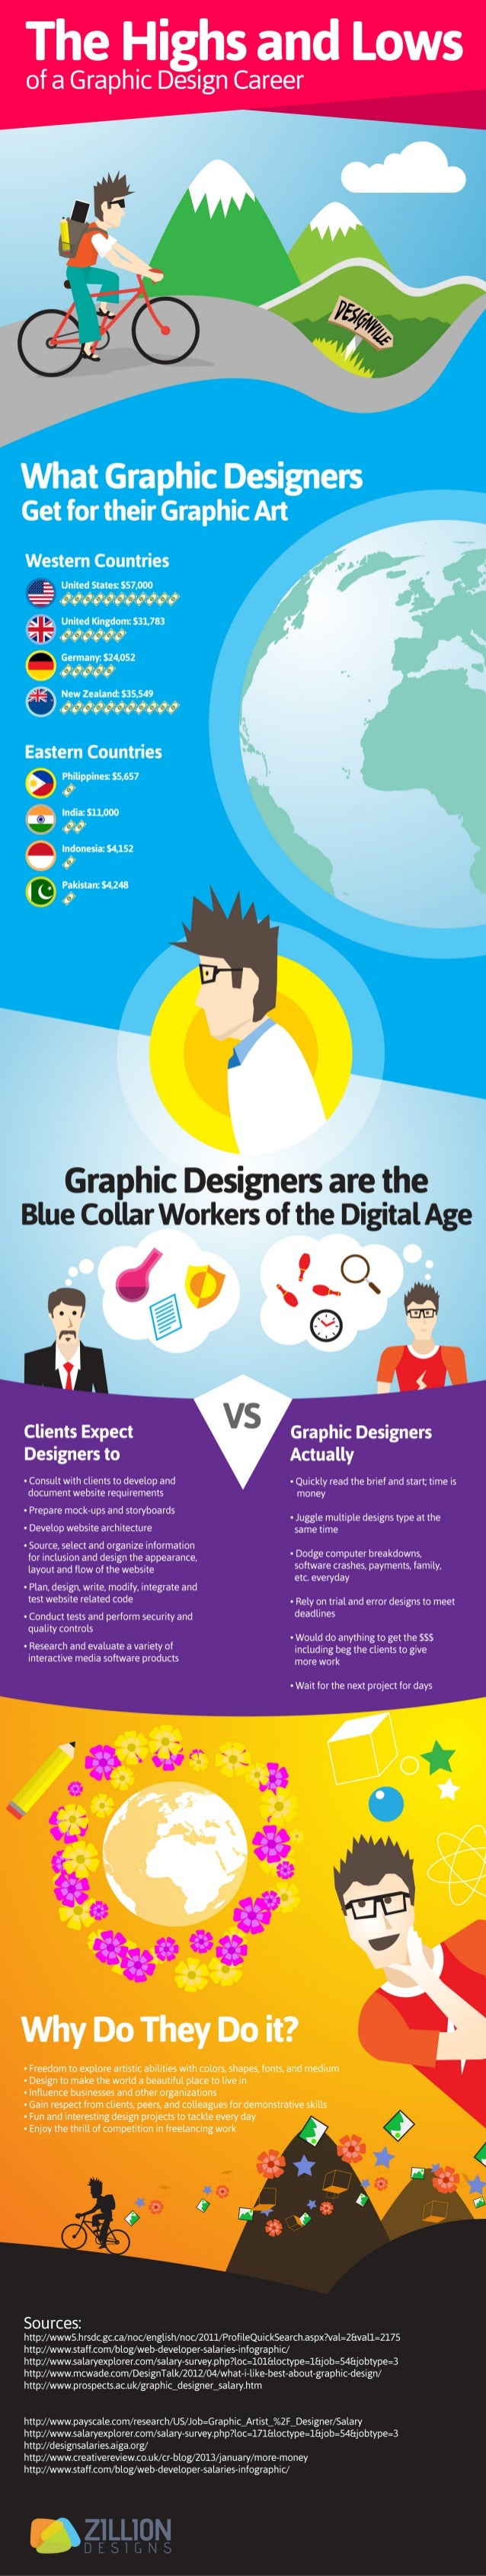 [INFOGRAPHIC]:The Highs and Lows of a Graphic Design Career